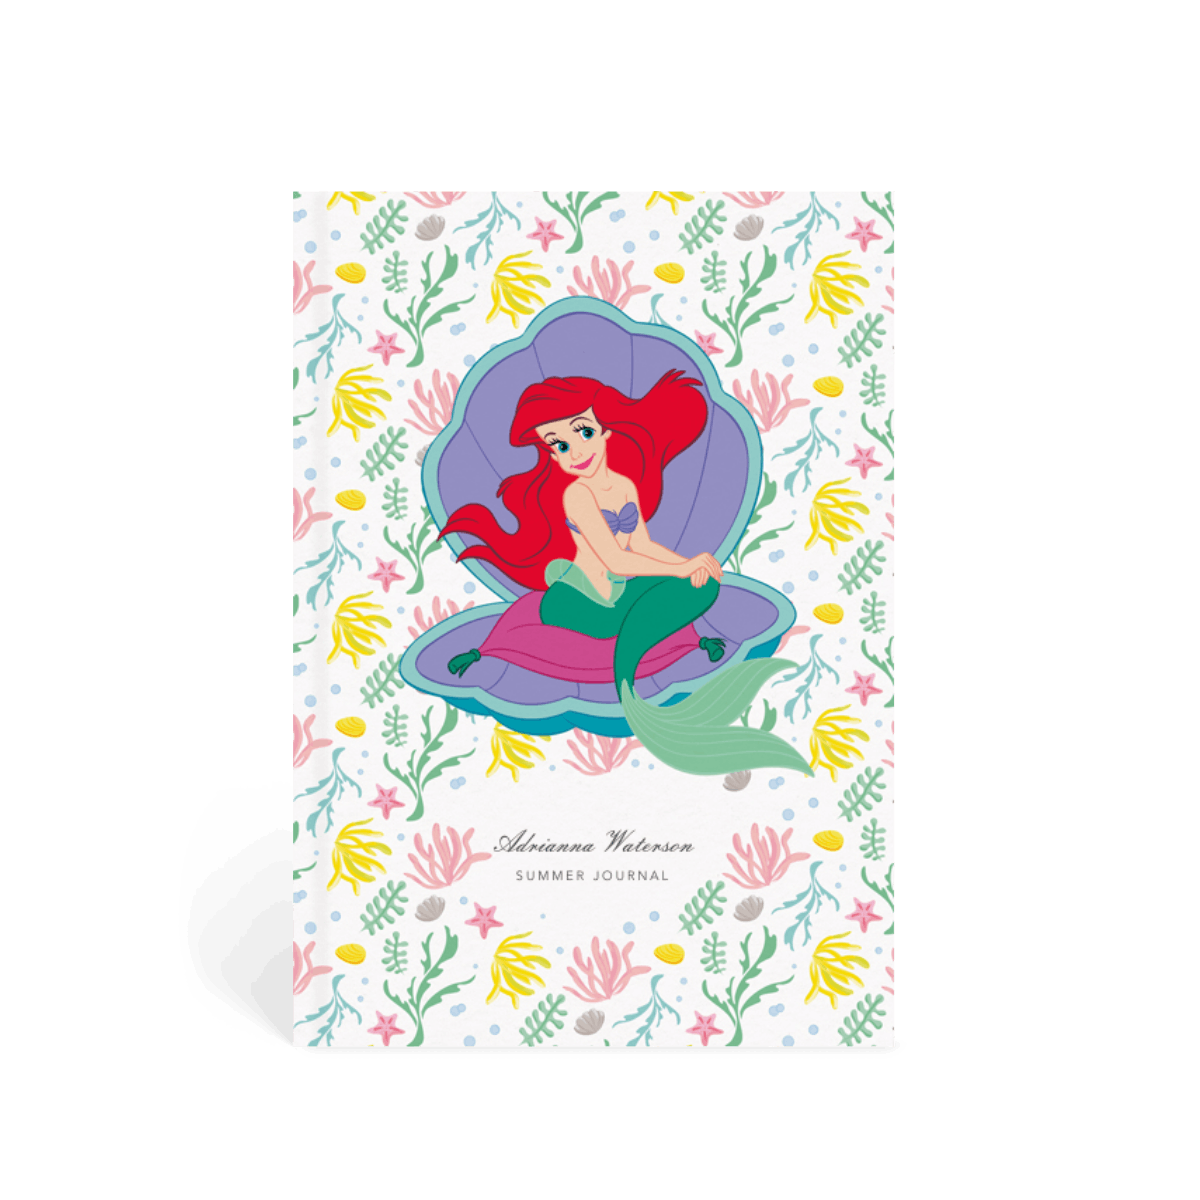 Https%3a%2f%2fwww.papier.com%2fproduct image%2f54107%2f25%2fthe little mermaid 13015 front 1542292235.png?ixlib=rb 1.1